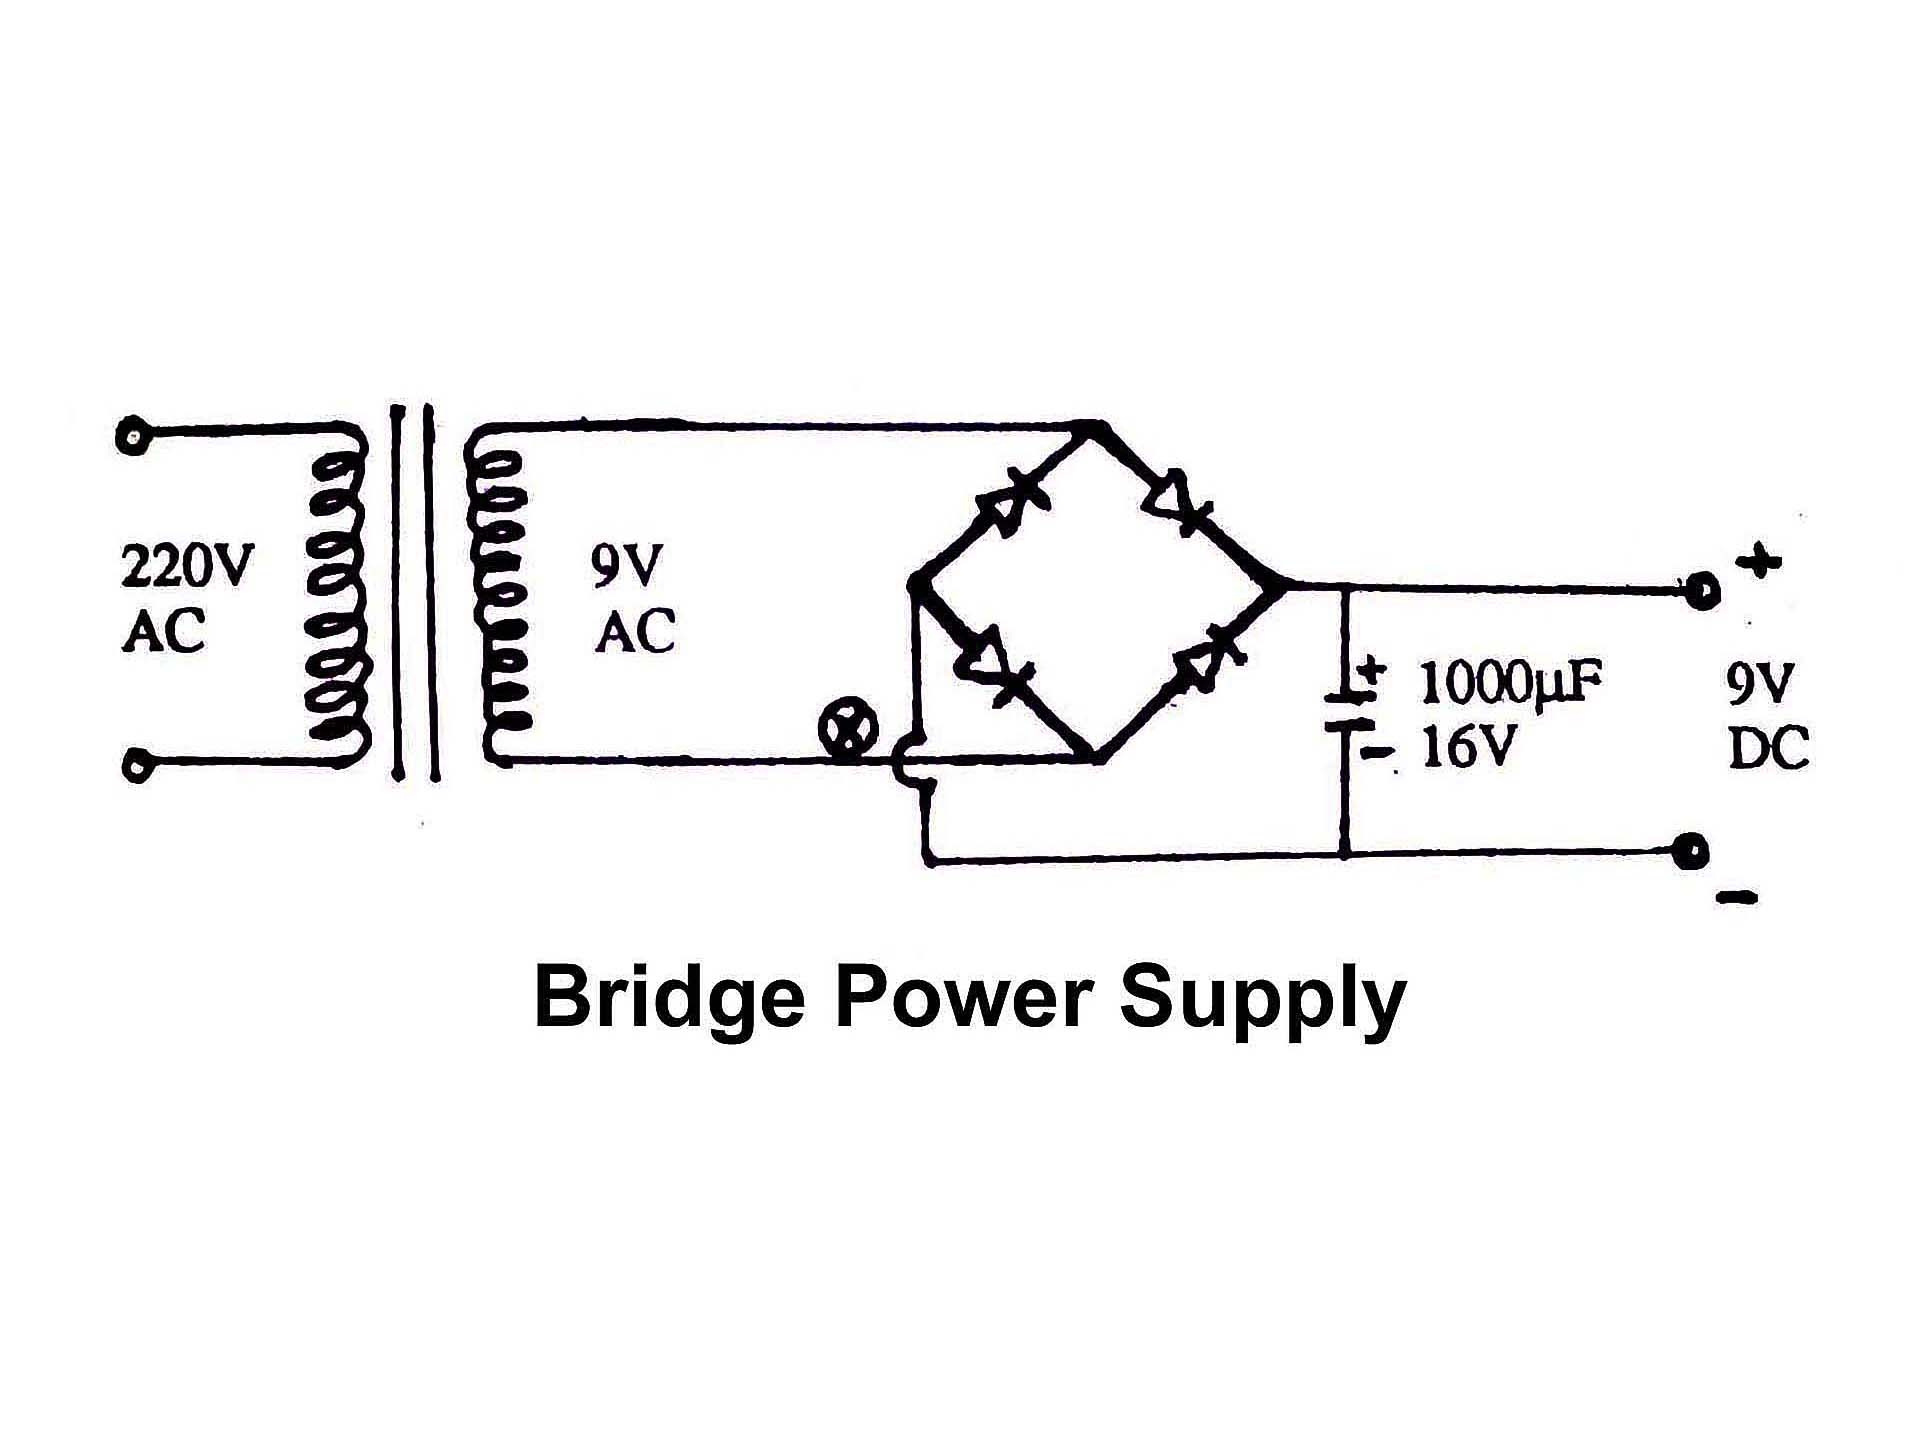 Bridge Power Supply Diagram